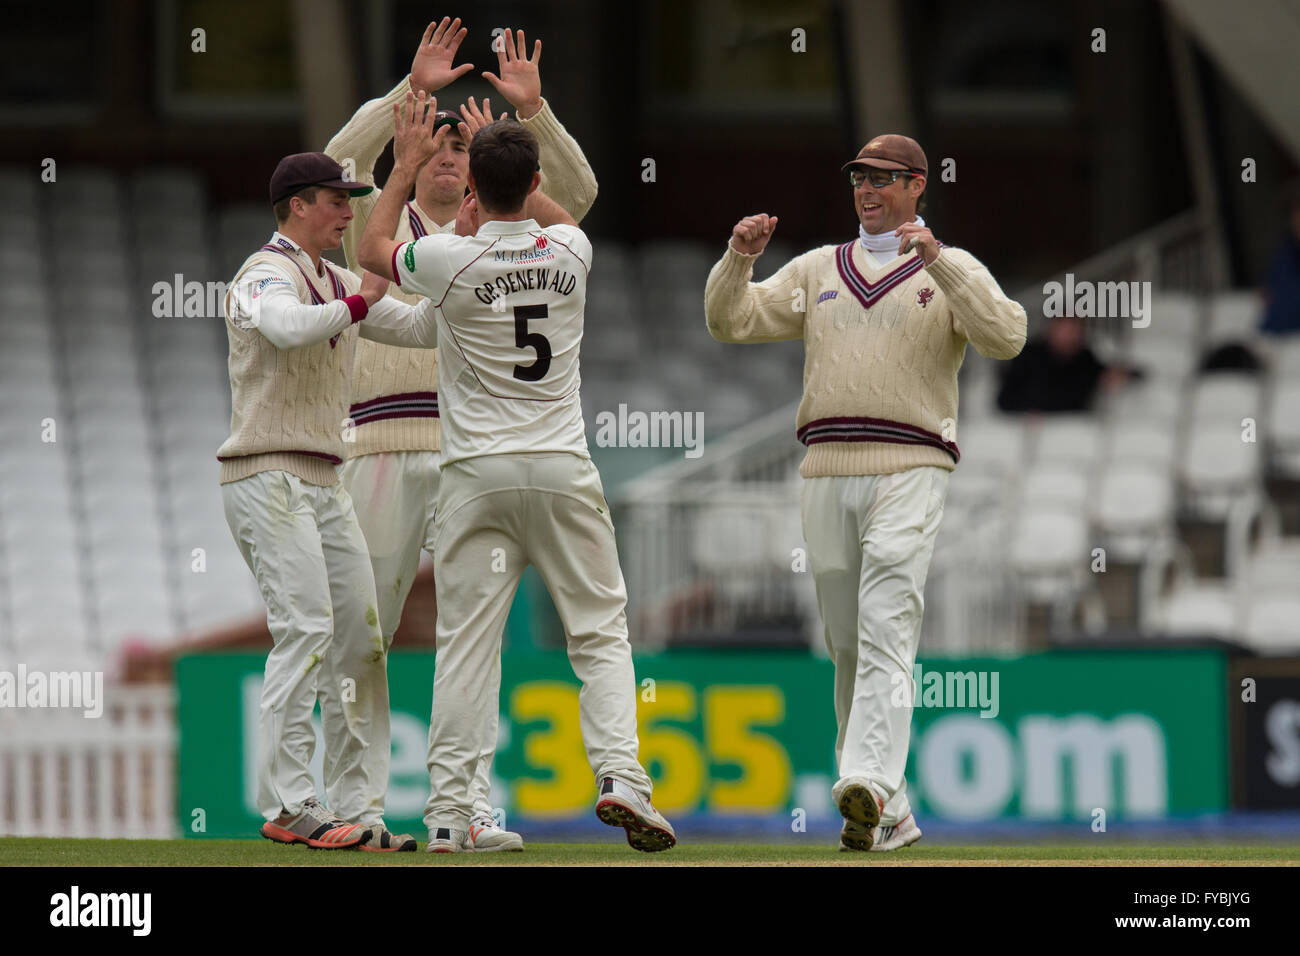 London, UK. 25 April 2016. Somerset players congratulate Tim Groenewald after he gets the wicket of Ben Foakes, - Stock Image